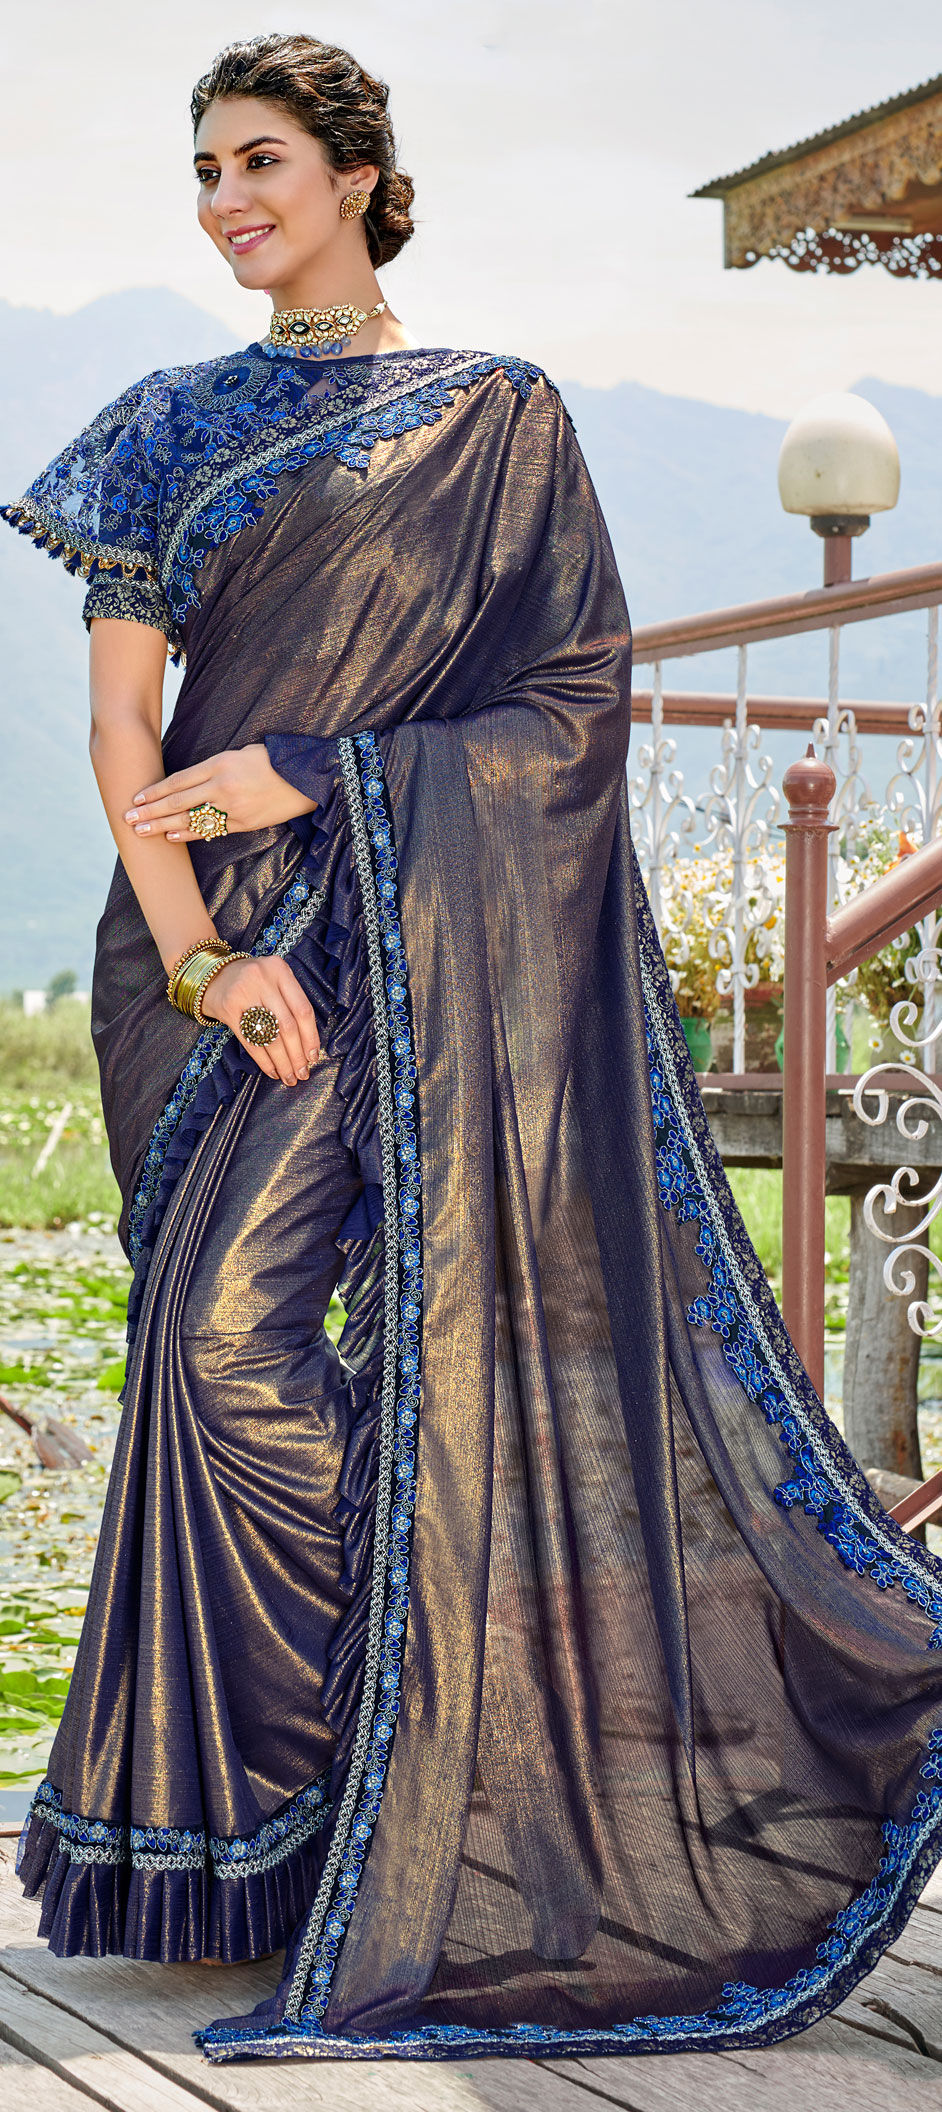 Enhance your Engagement Day Look with These Beautiful Sarees